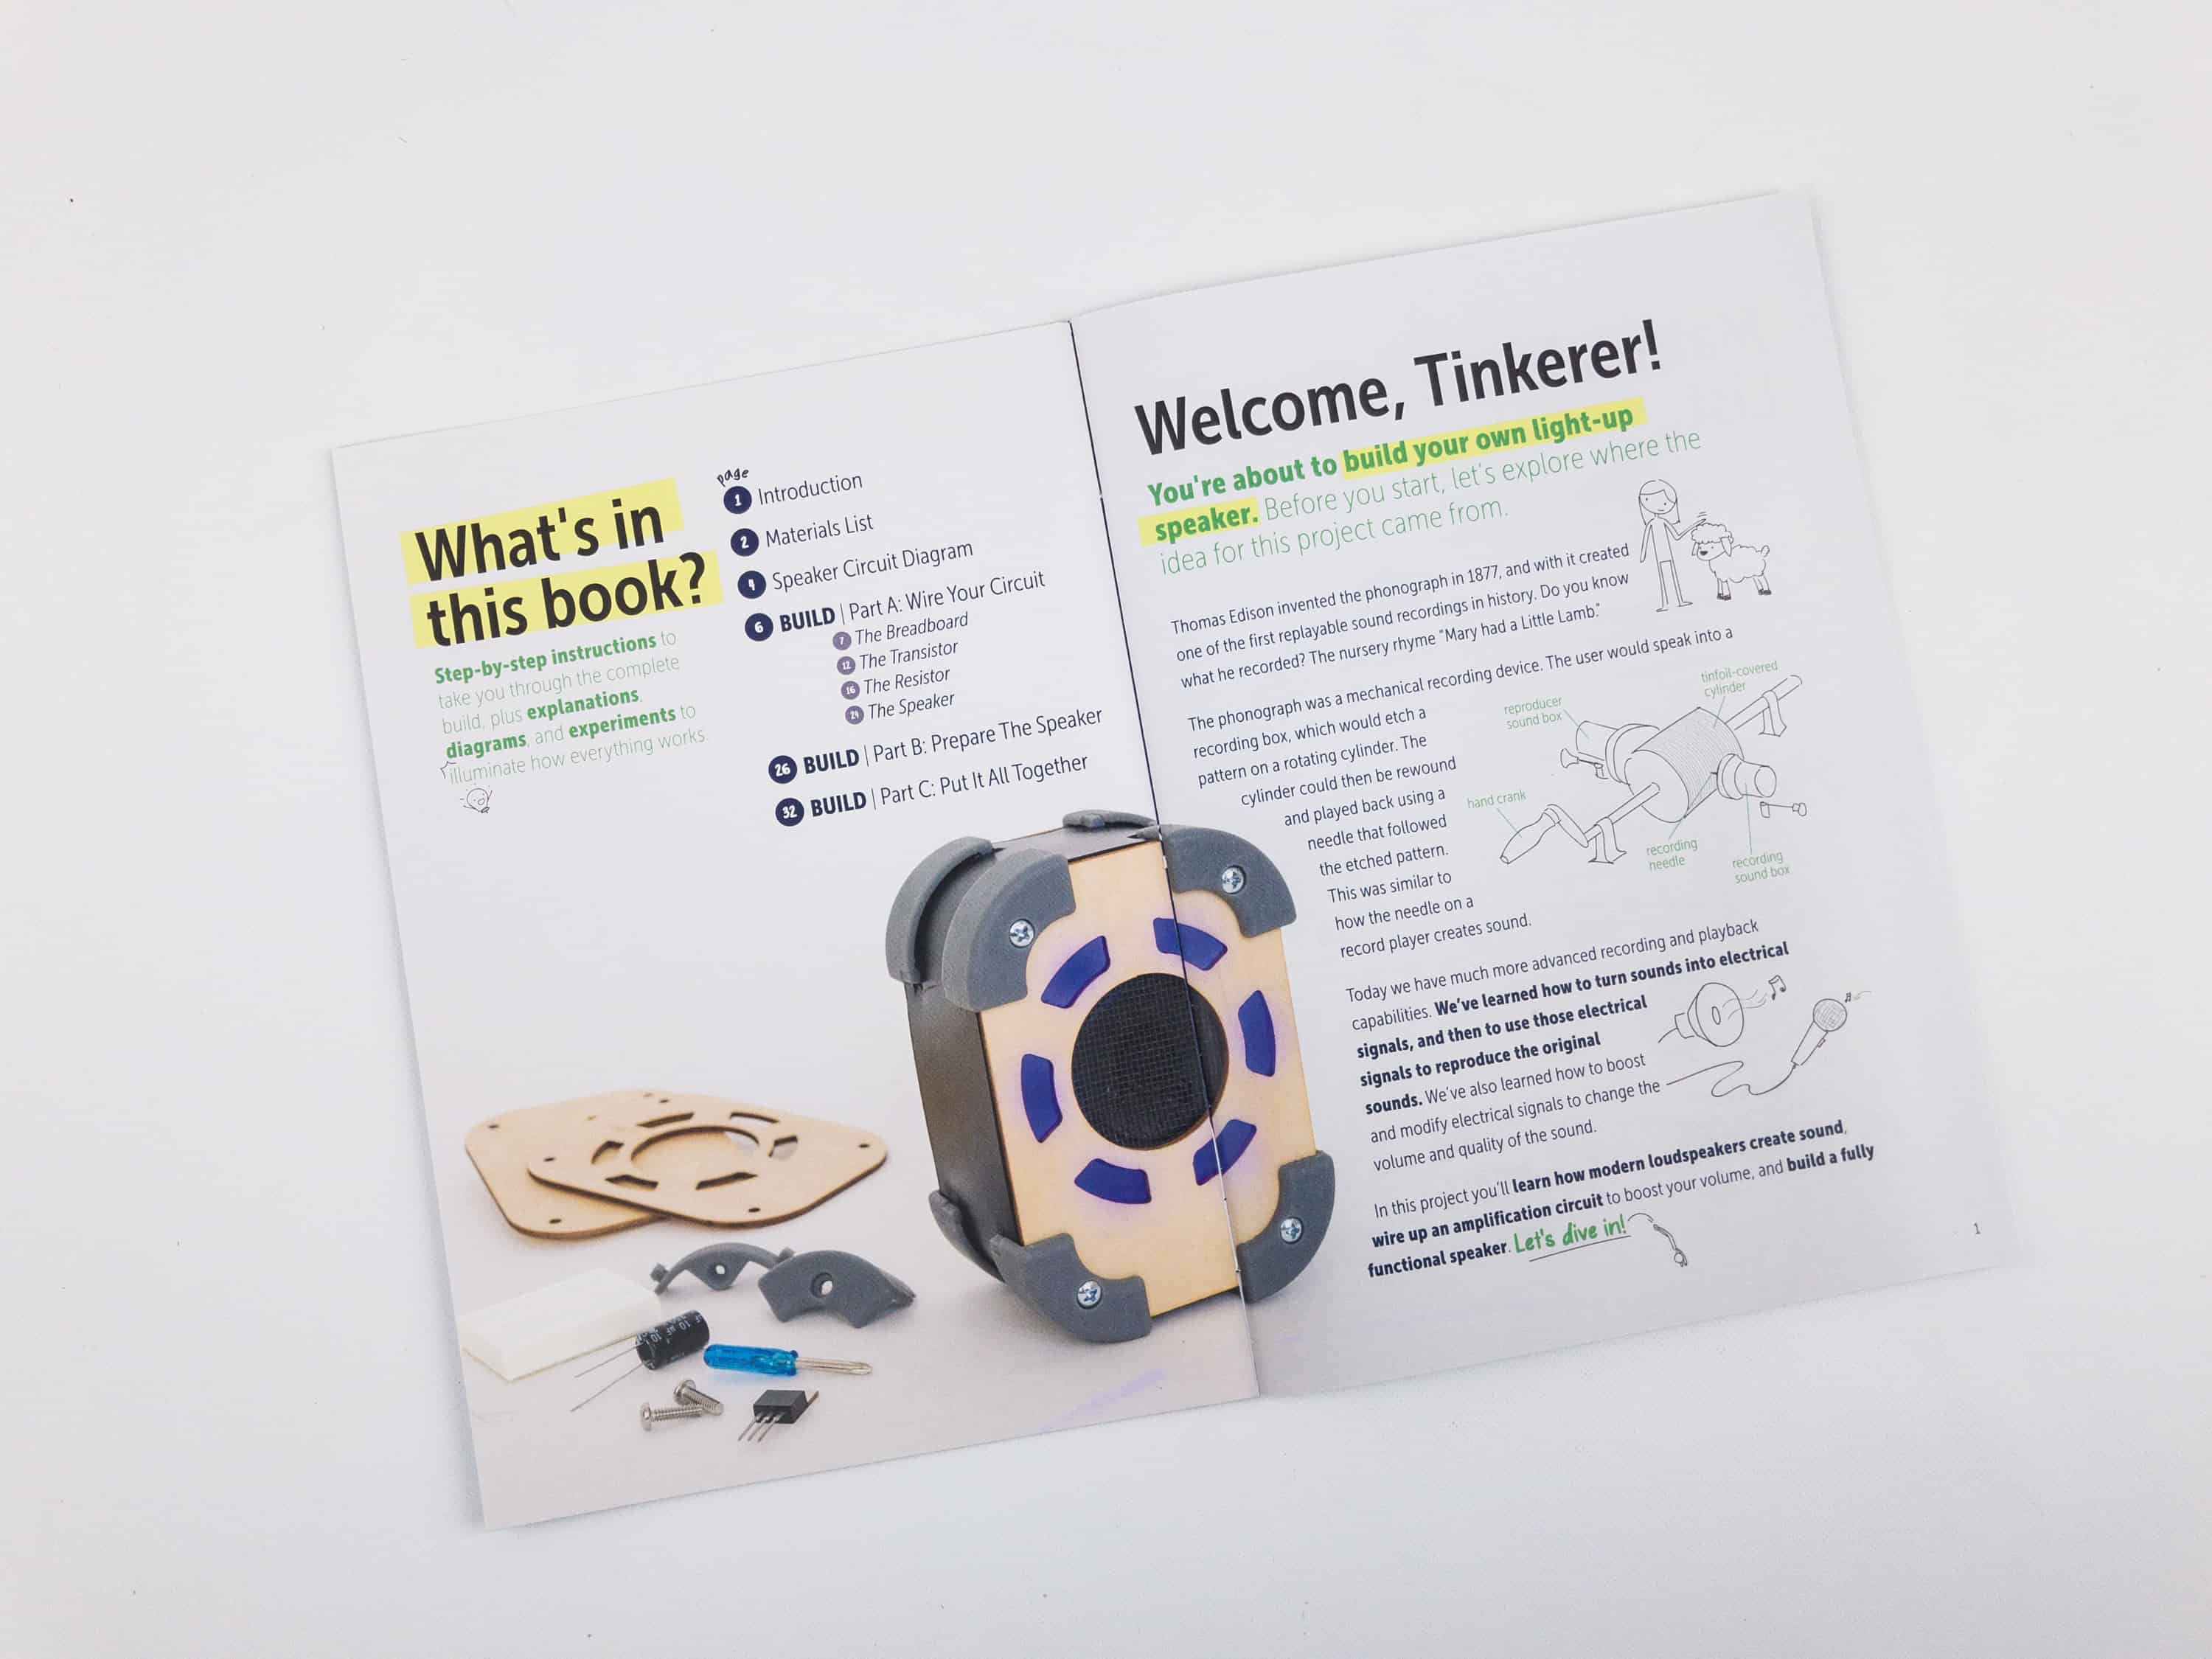 Tinker Crate Electronics Pack Review Light Up Speaker Hello Edison Lamp Wiring Diagram The Instructions And Other Project Info Are Printed On A Mini Magazine